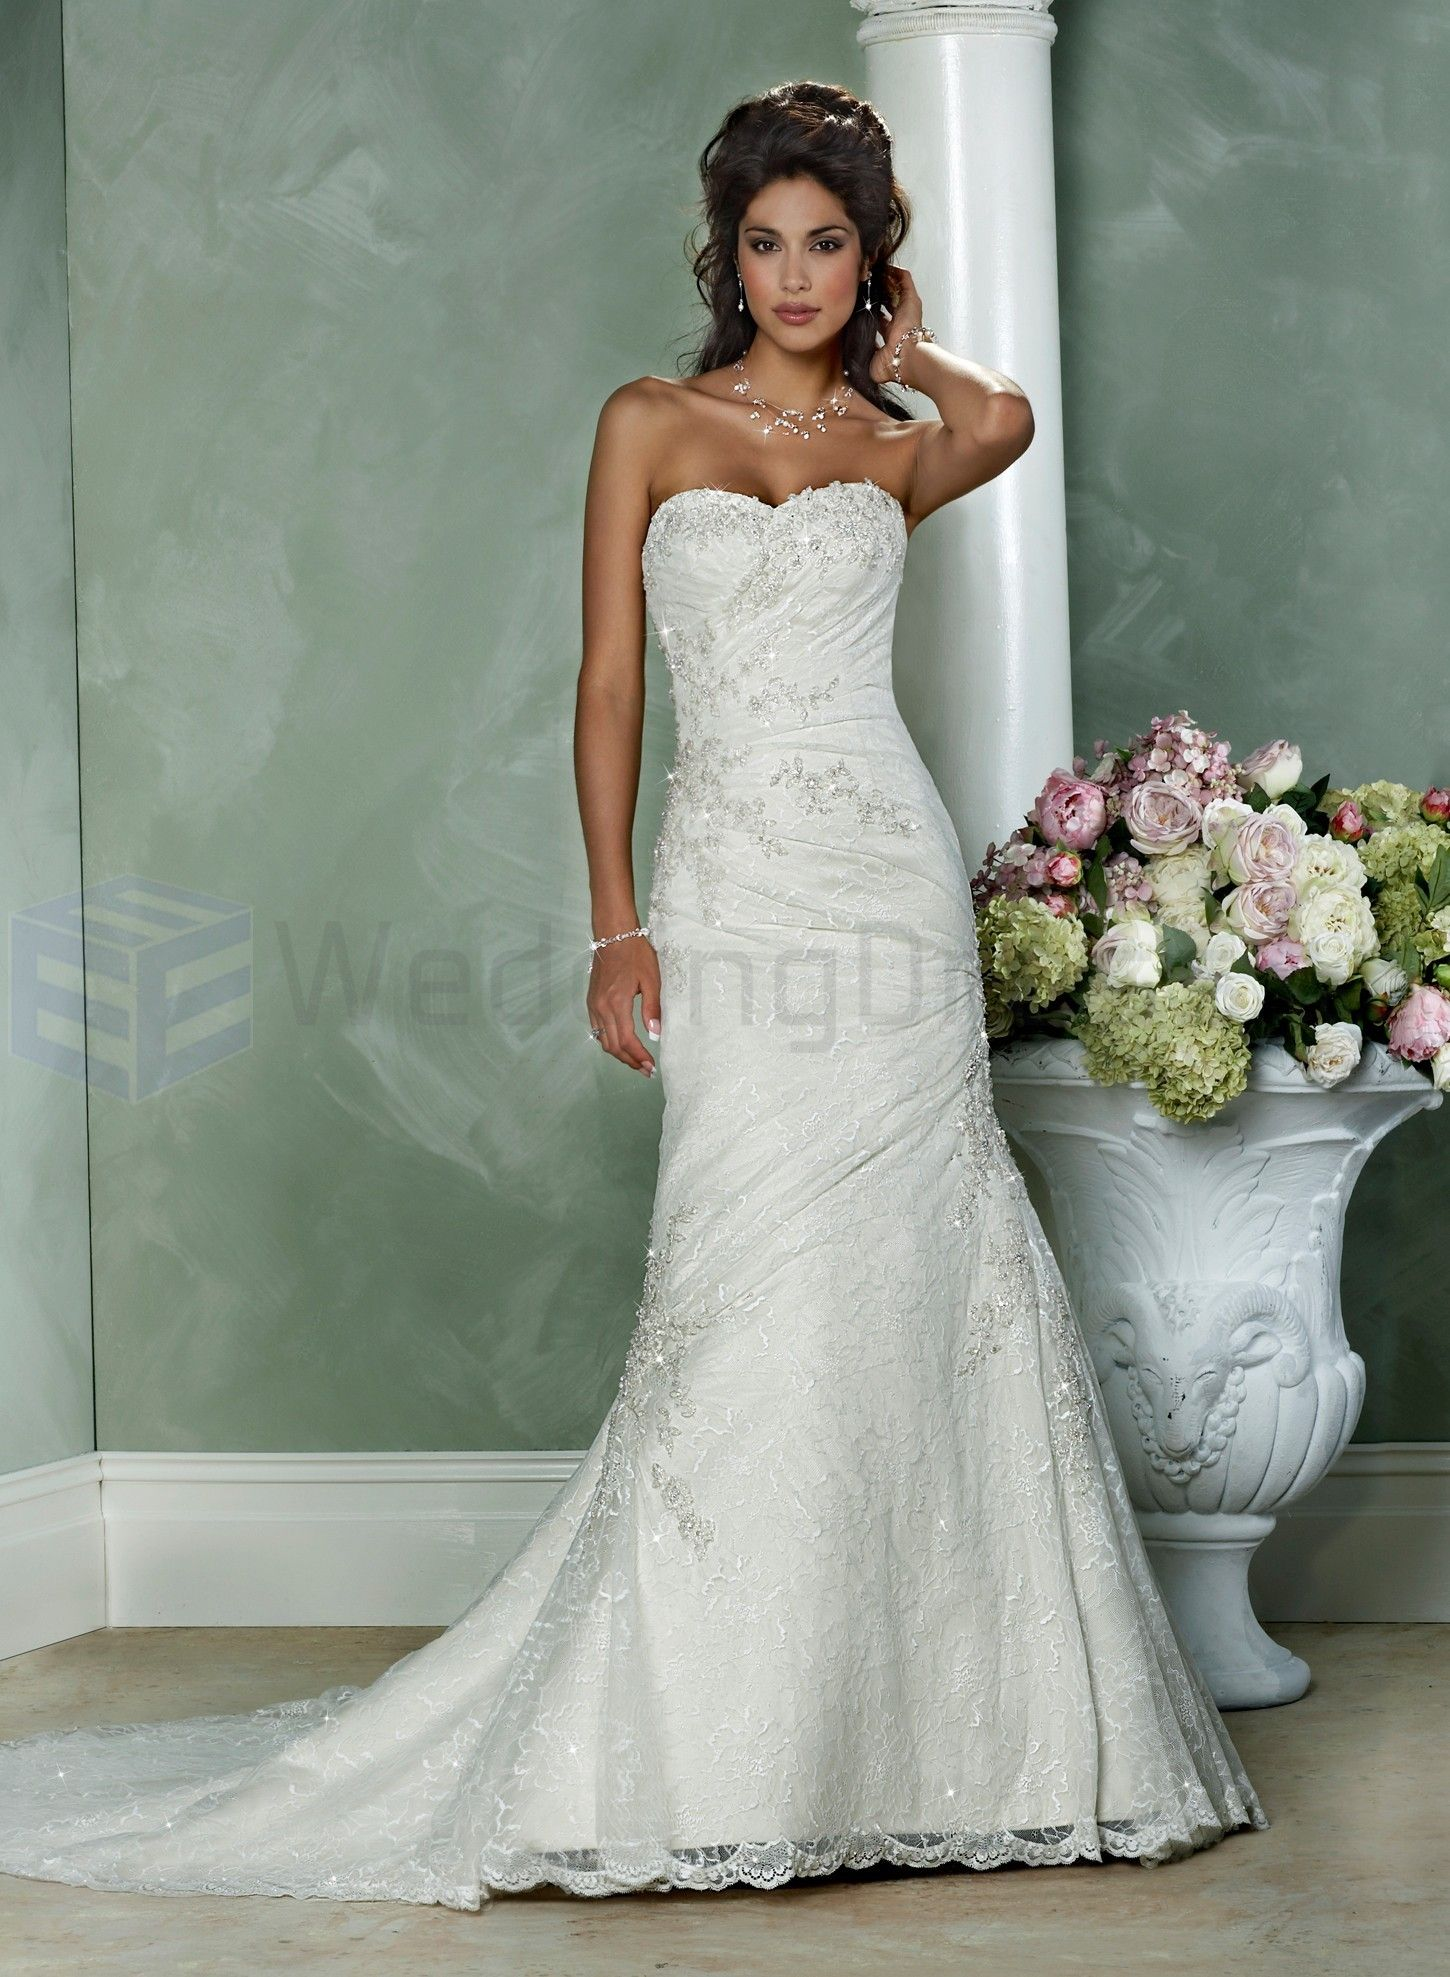 Lace Wedding Dresses | Lace and Satin Strapless Sweetheart Neckline ...